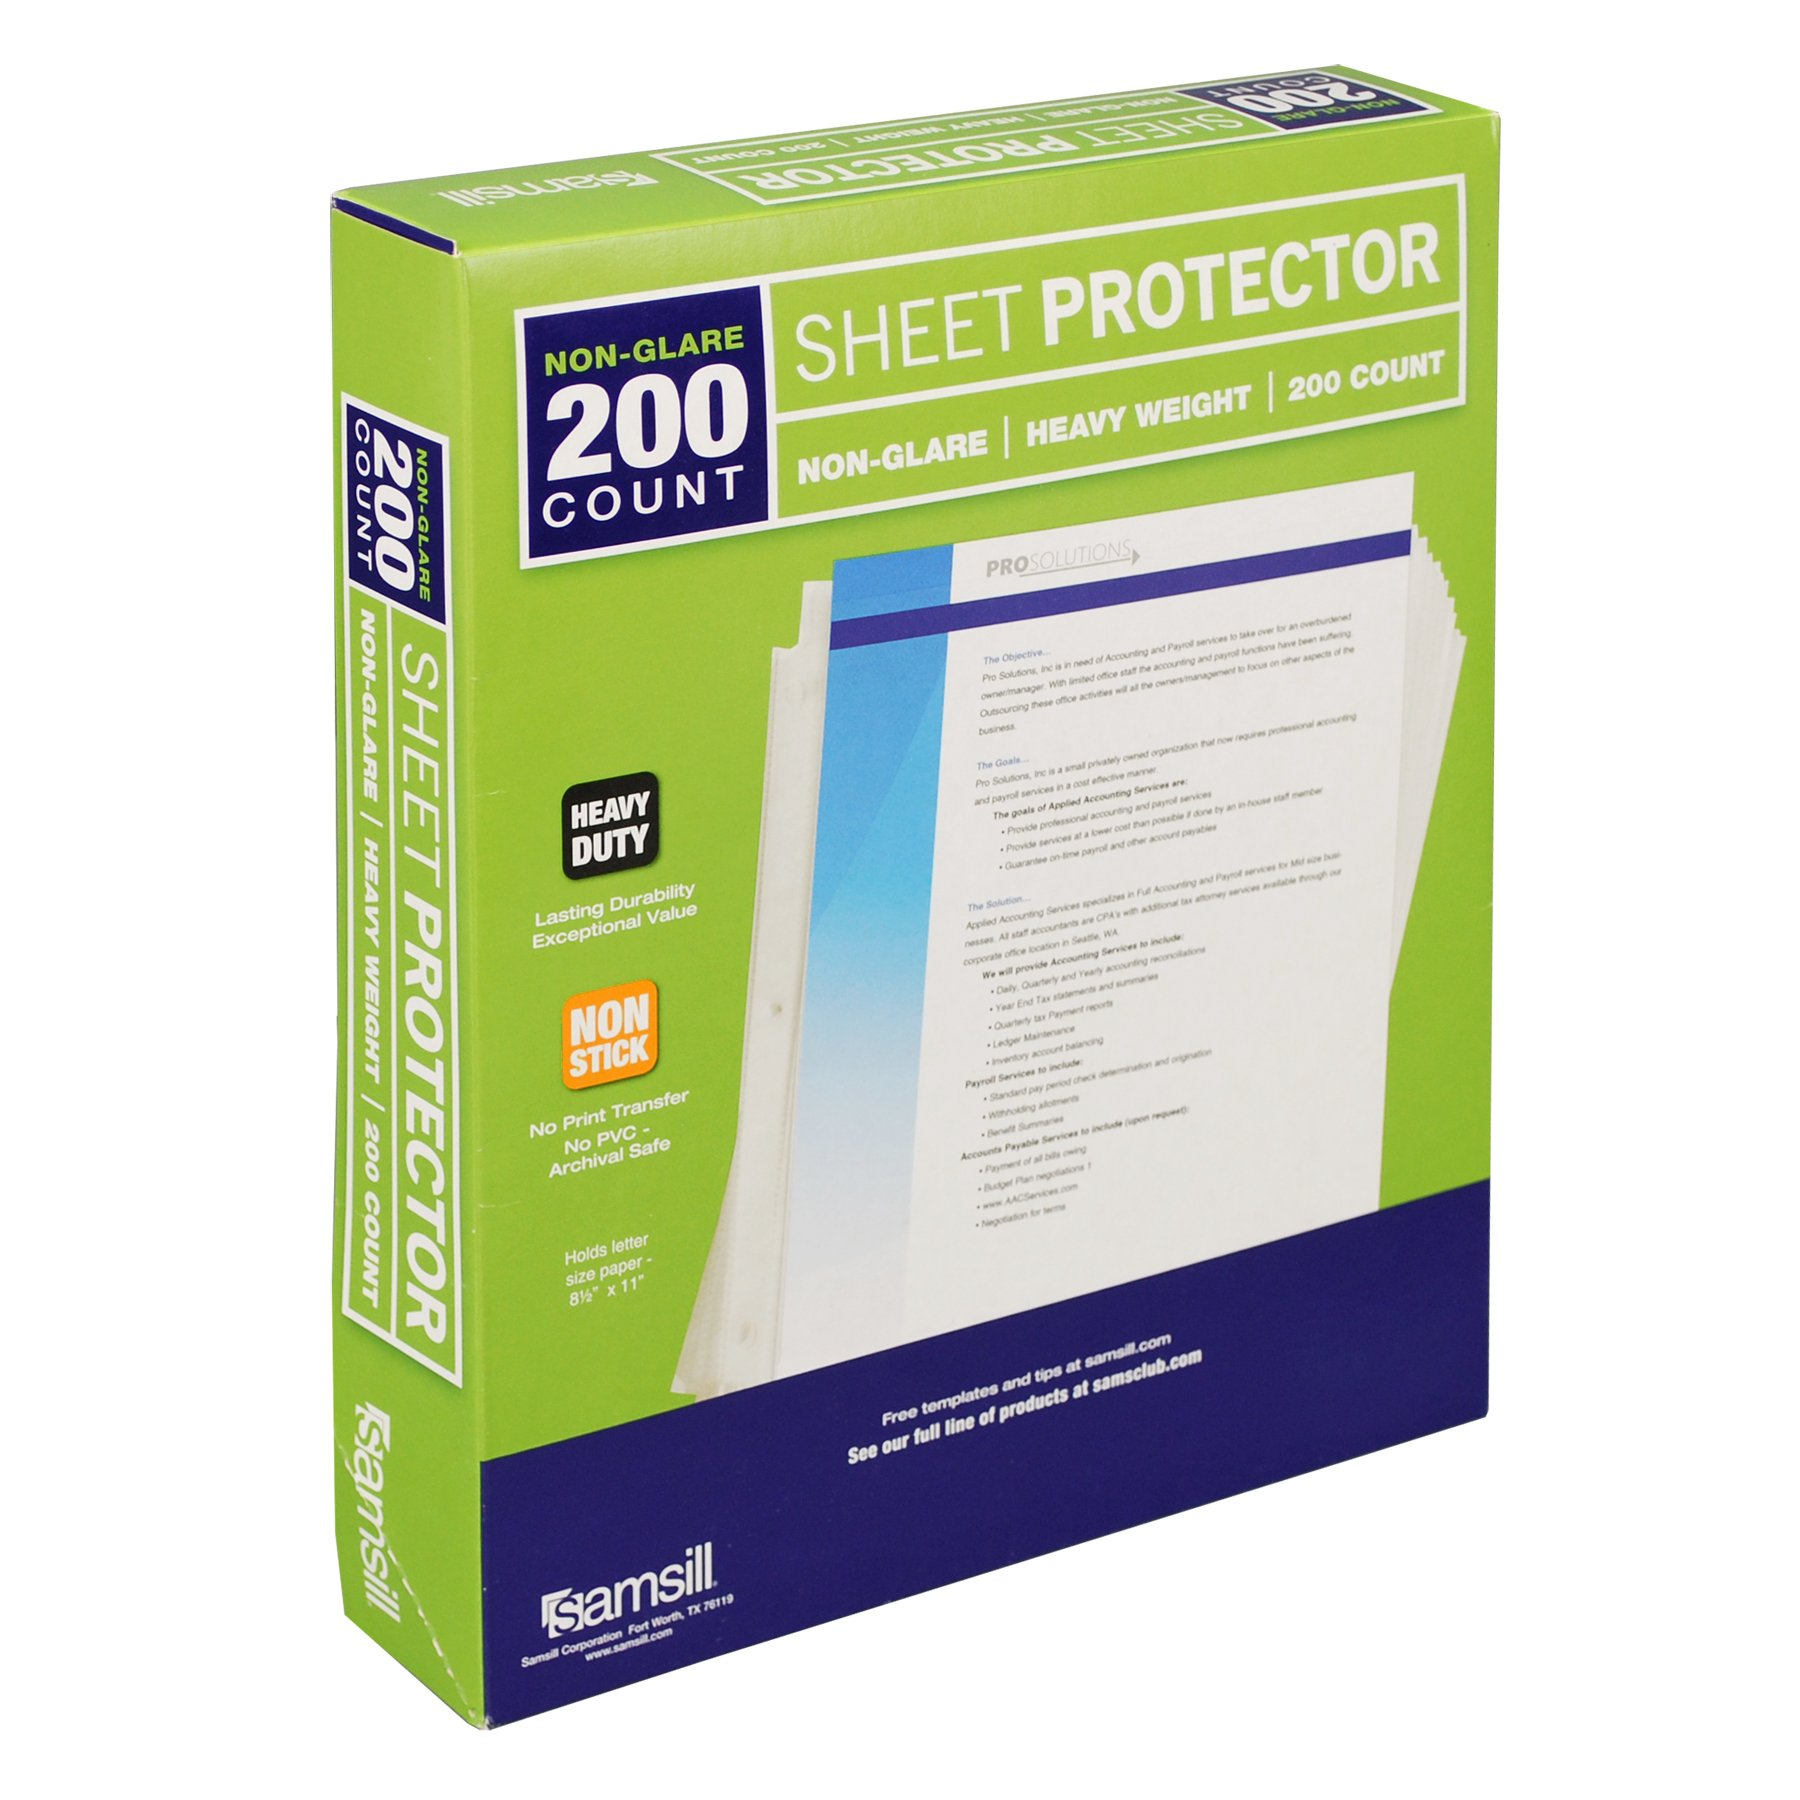 Samsill Heavyweight Non-Glare Sheet Protectors, Box of 200 Plastic Page Protectors, Acid Free/Archival Safe, Top Load 8.5 x 11 Inches